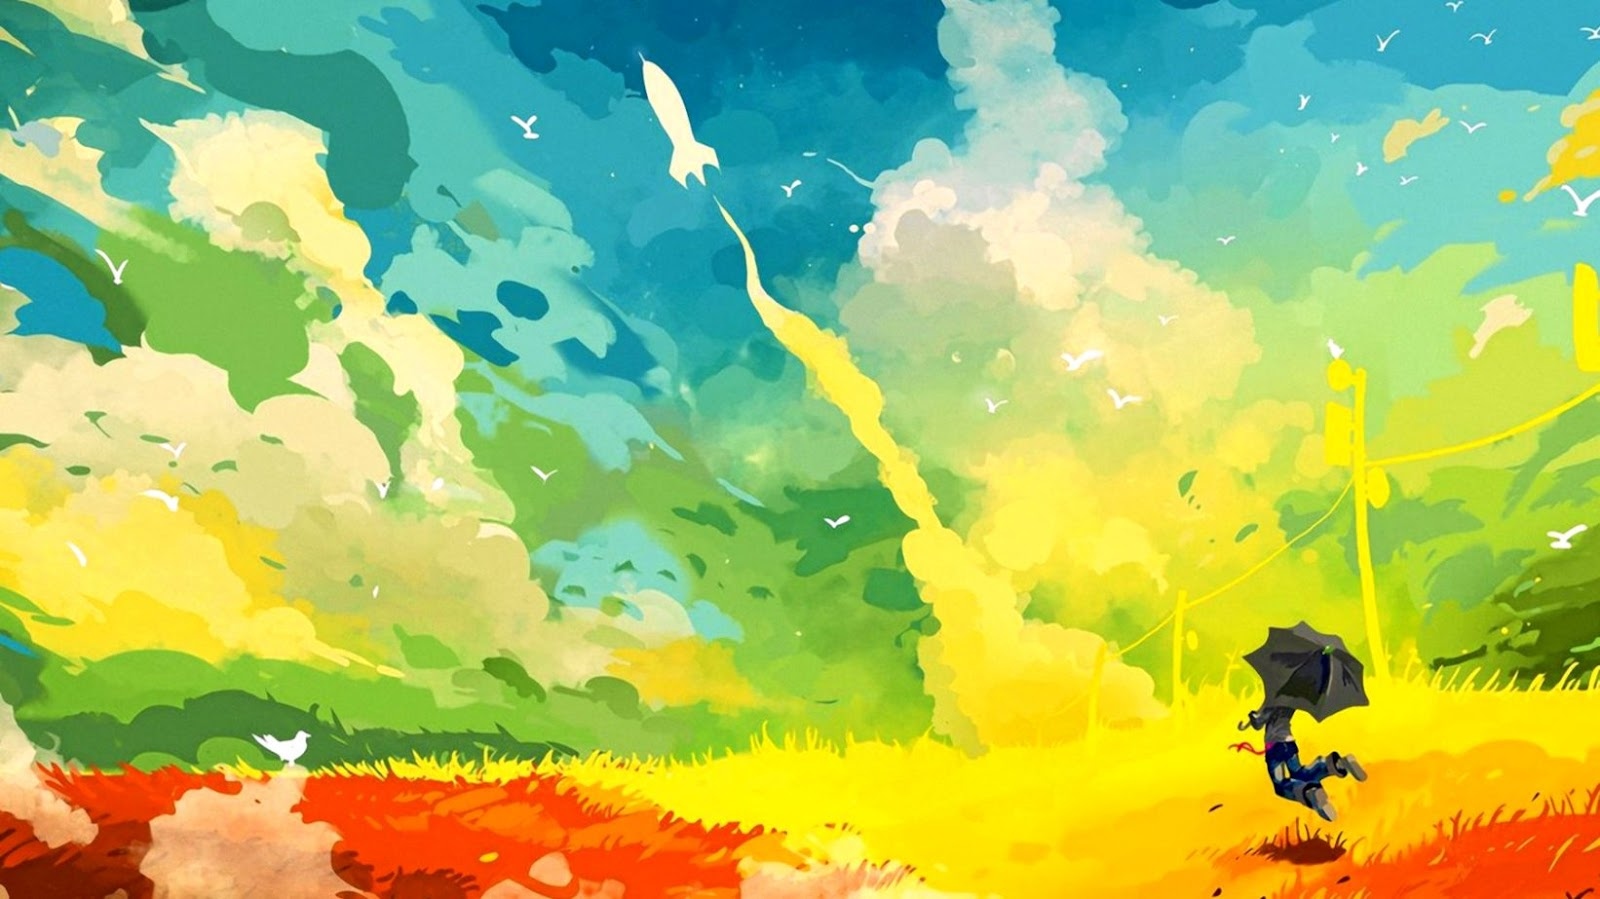 Abstract Digital Art Top Hd Wallpapers In Widescreen Free